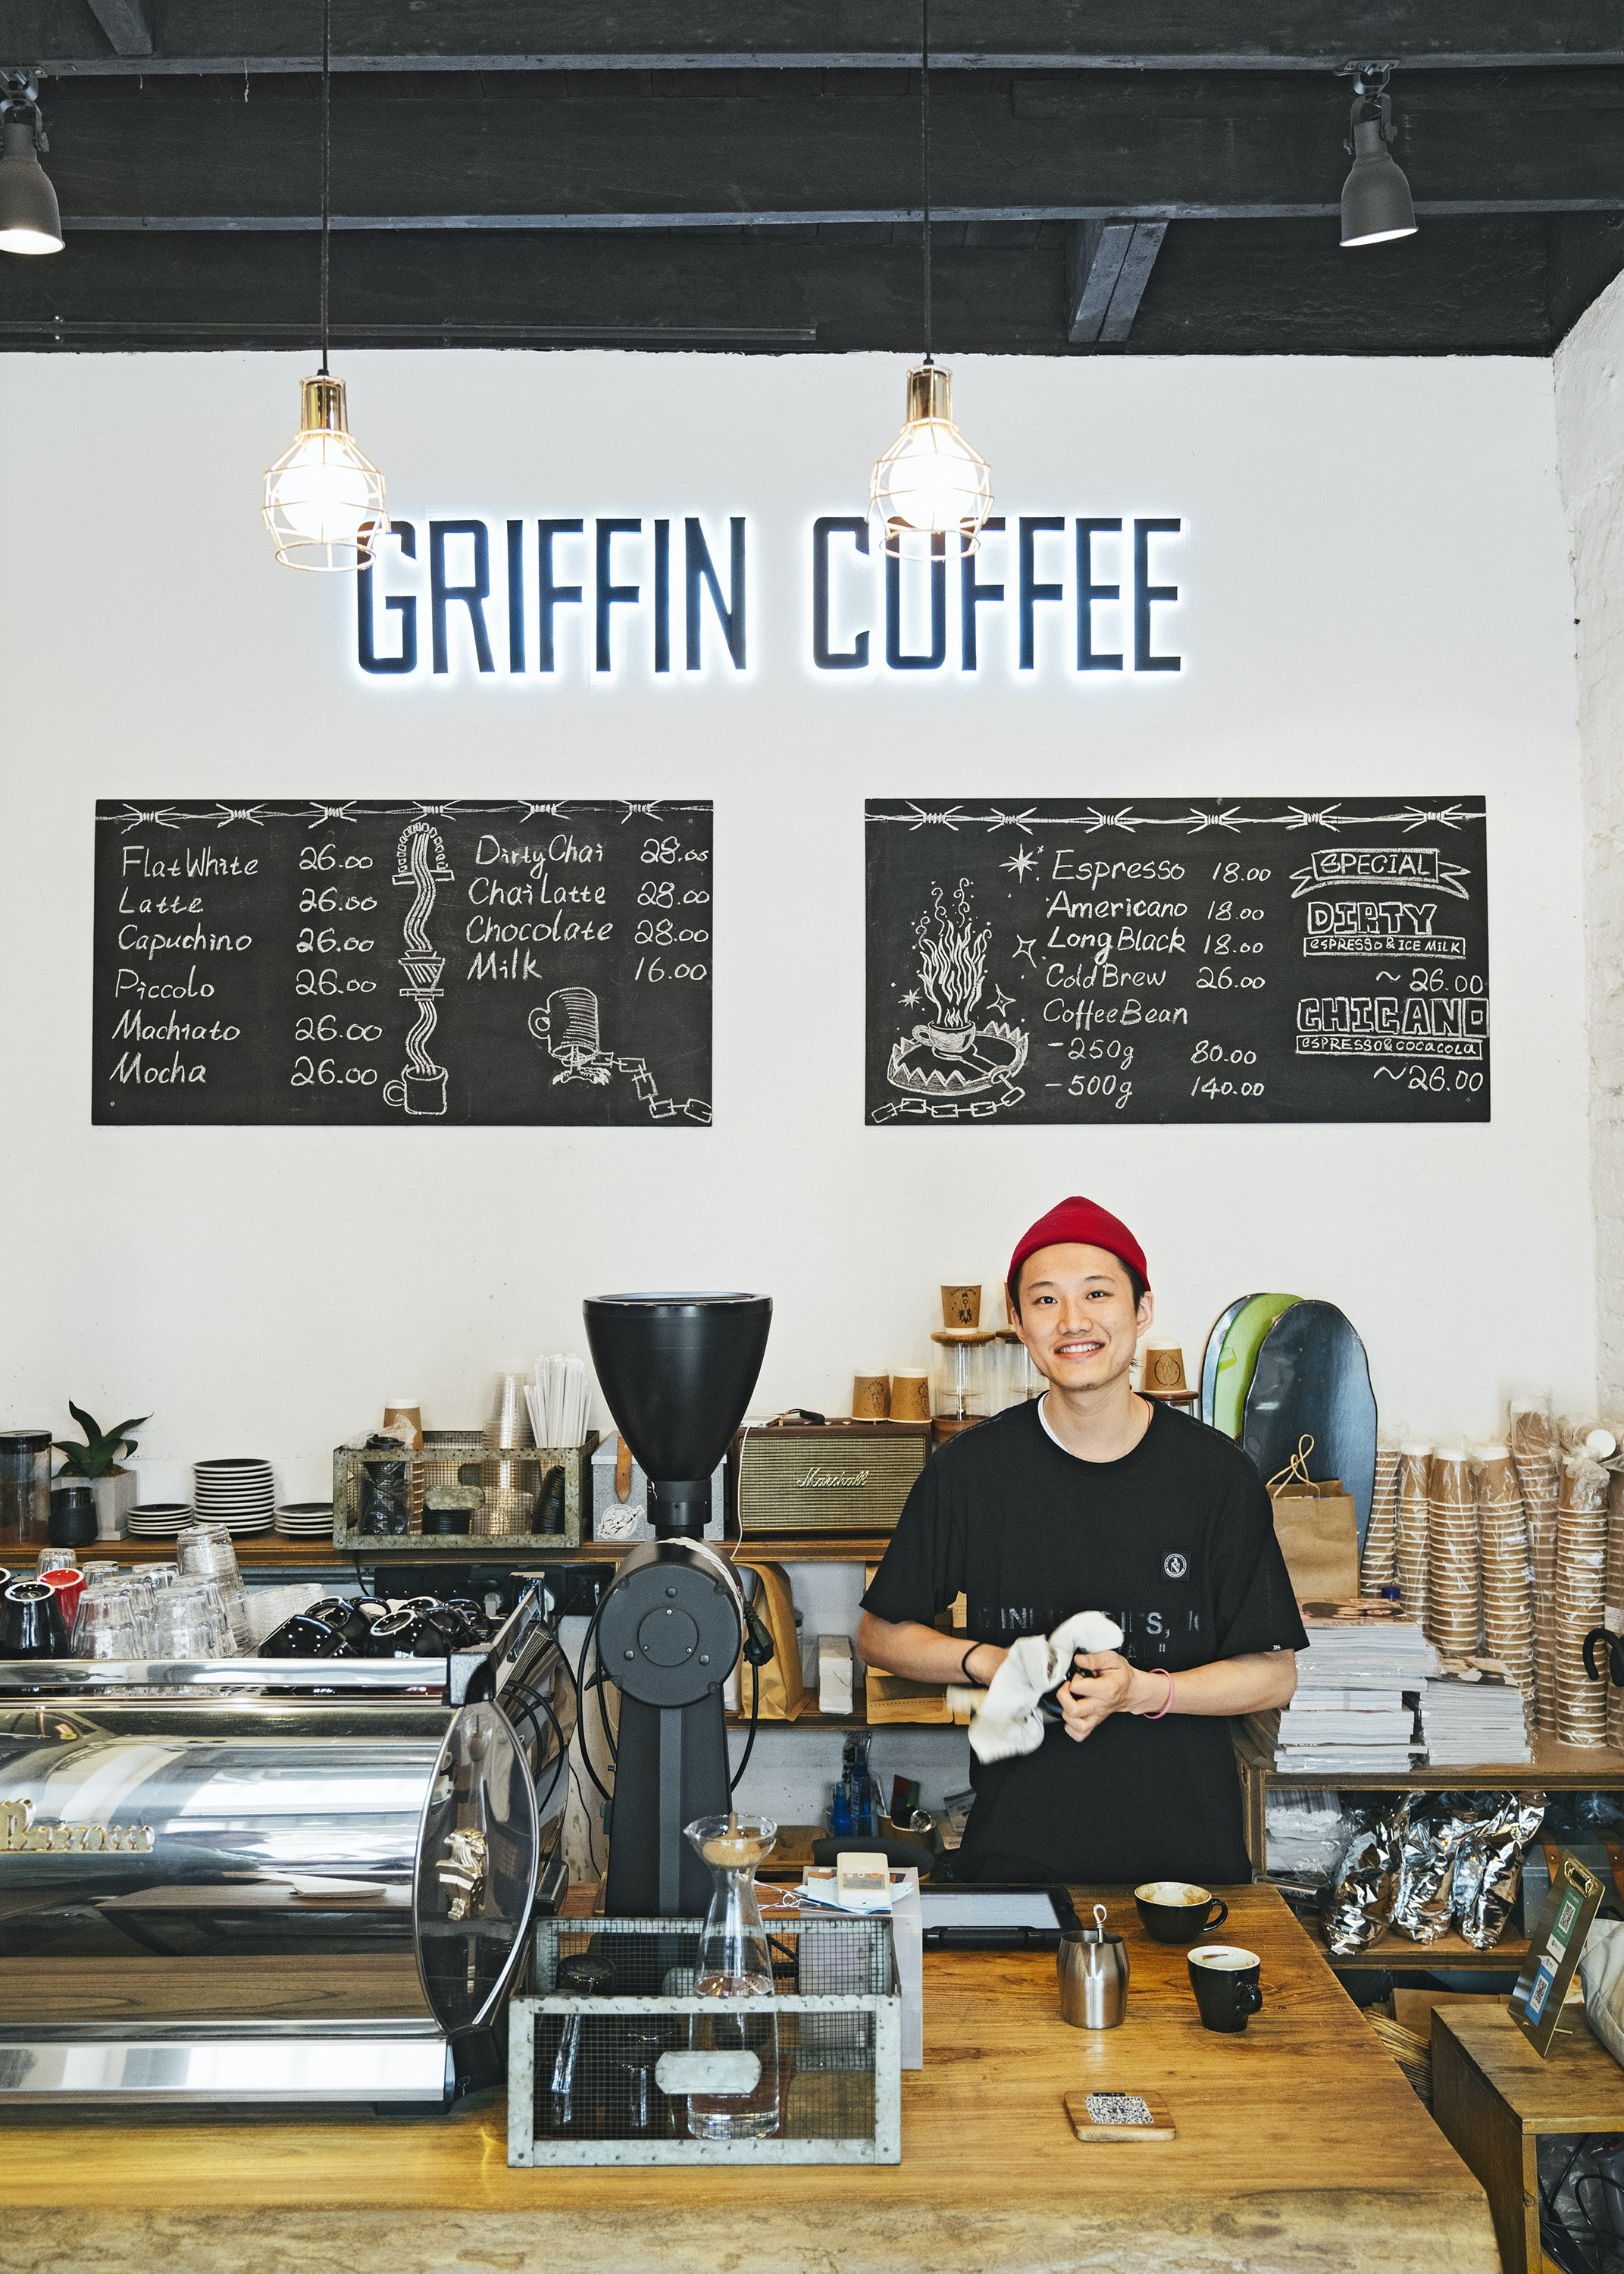 At Griffin Coffee in Jing'an, Zheng recommends the Caffè Americano.